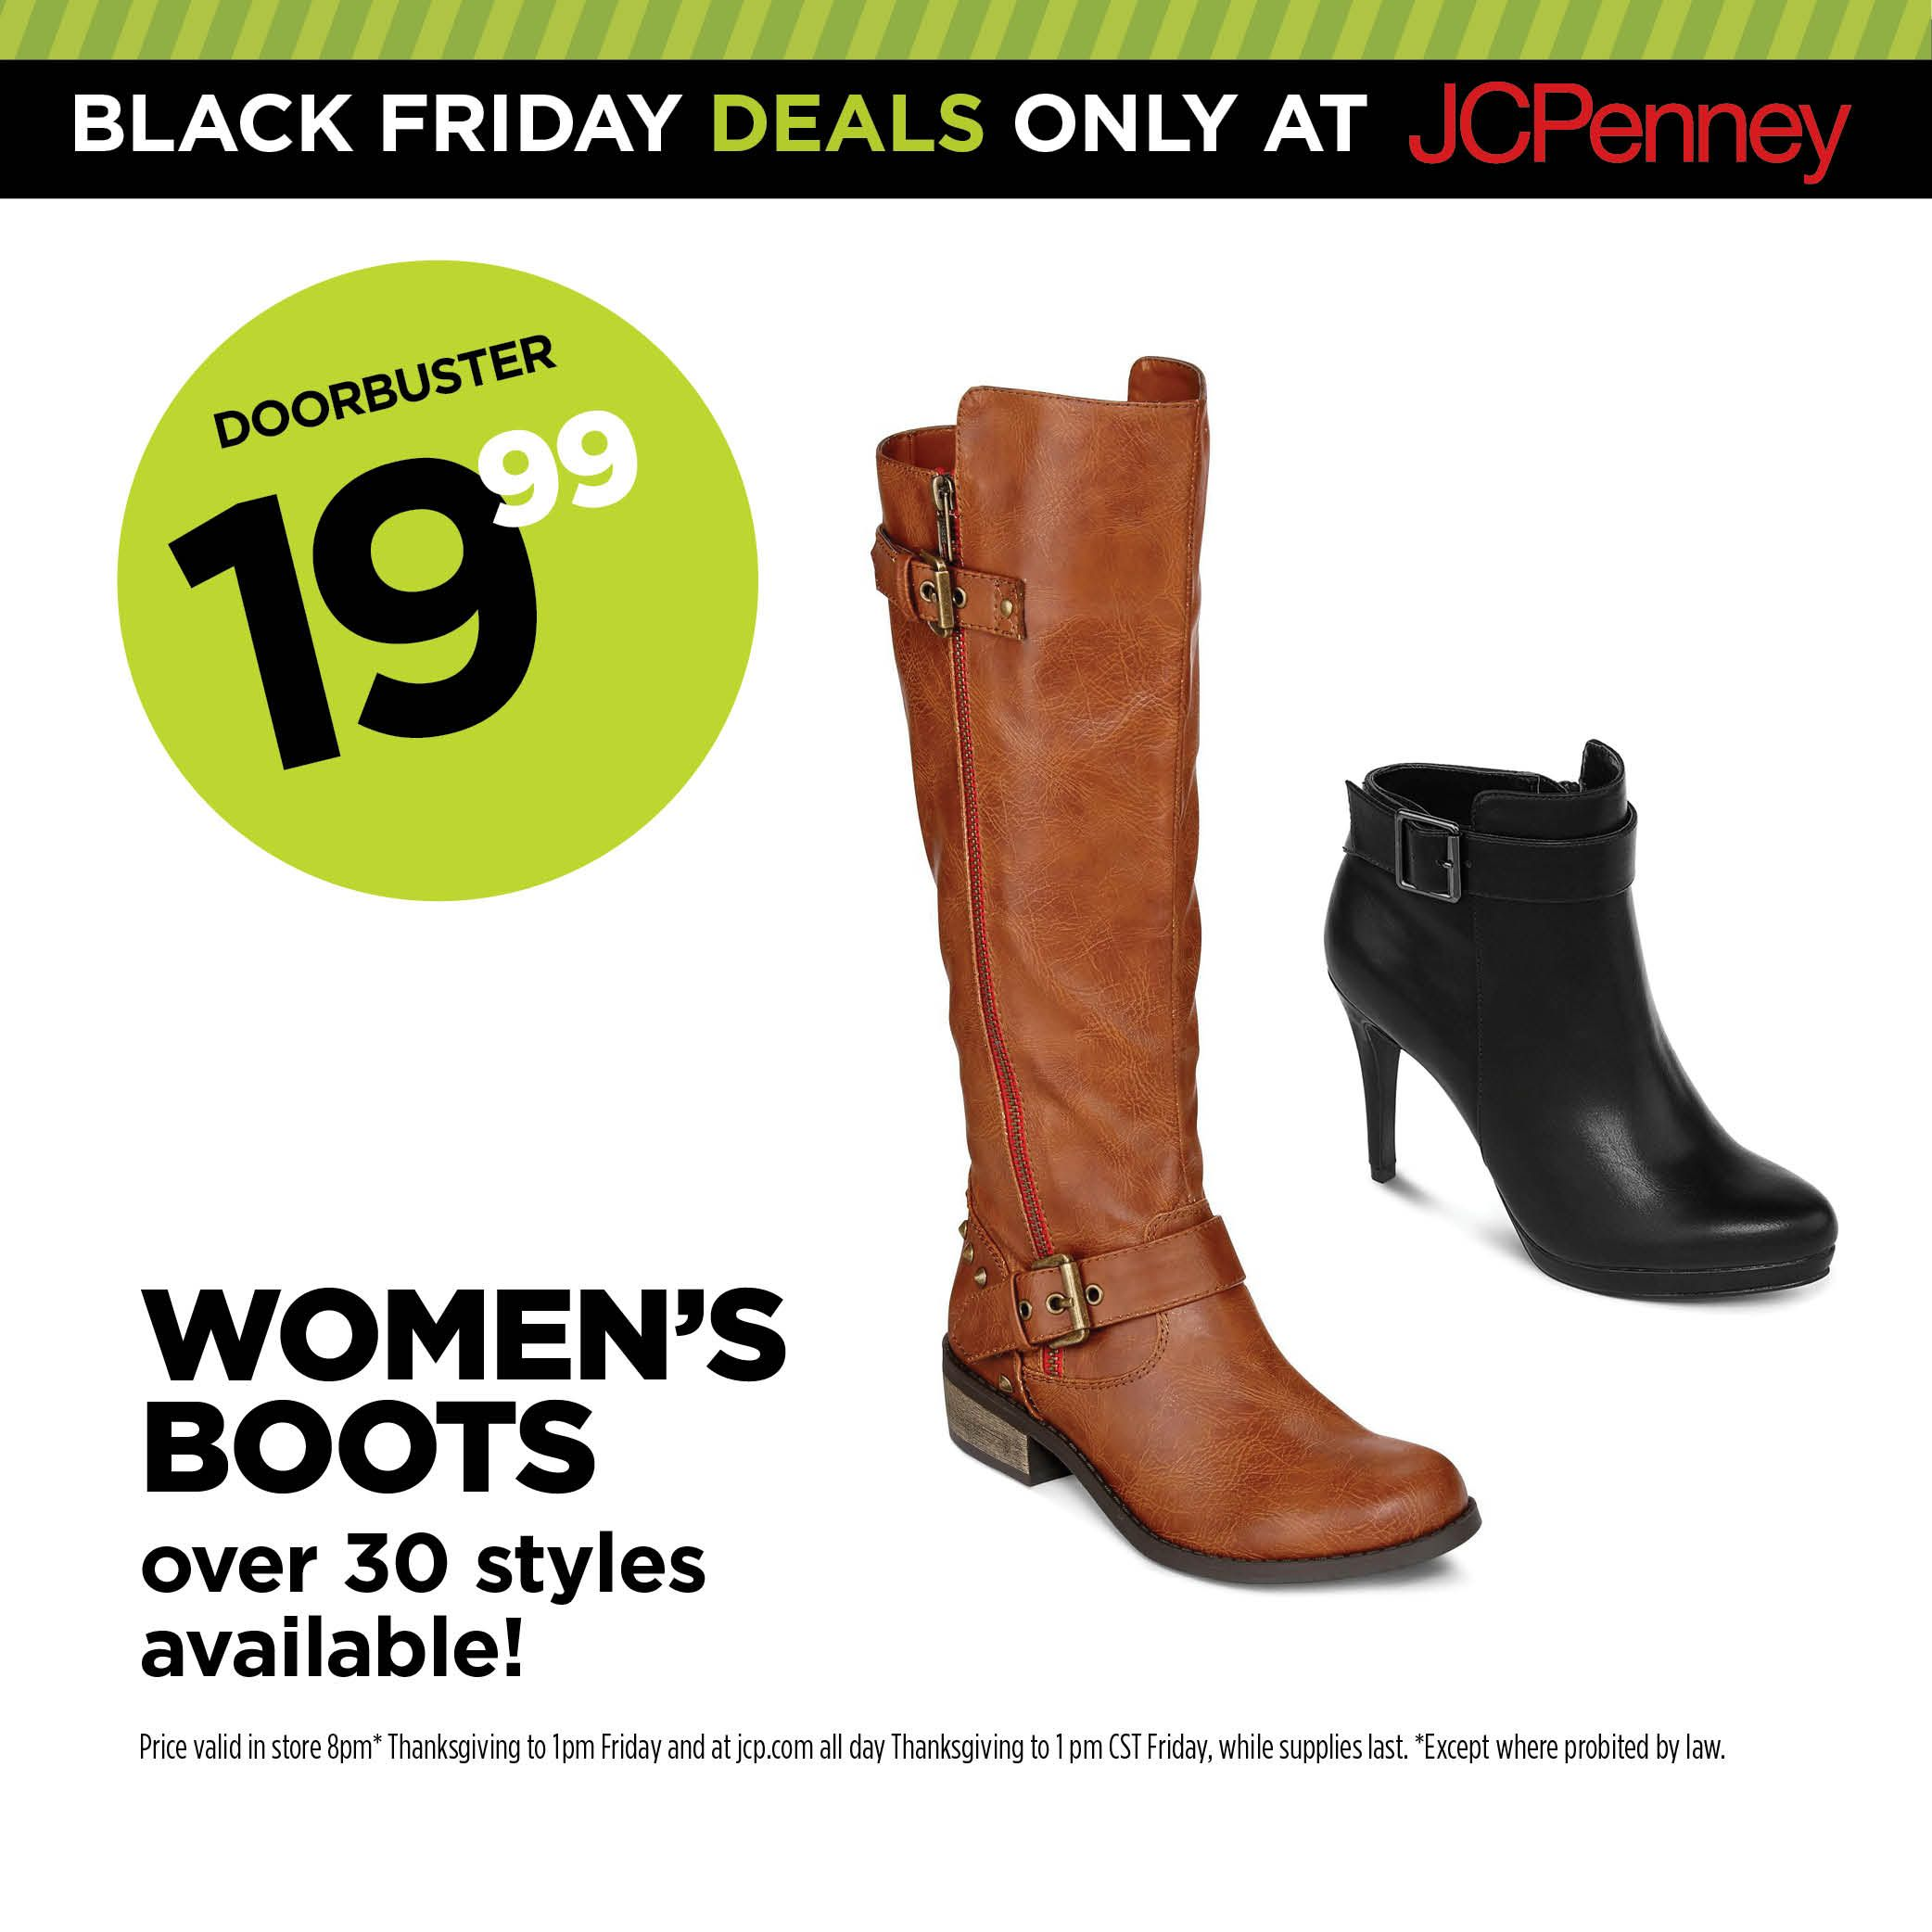 c9c2b4716d8 JCPenney Black Friday Deal. Kick-start your holiday shopping with ...